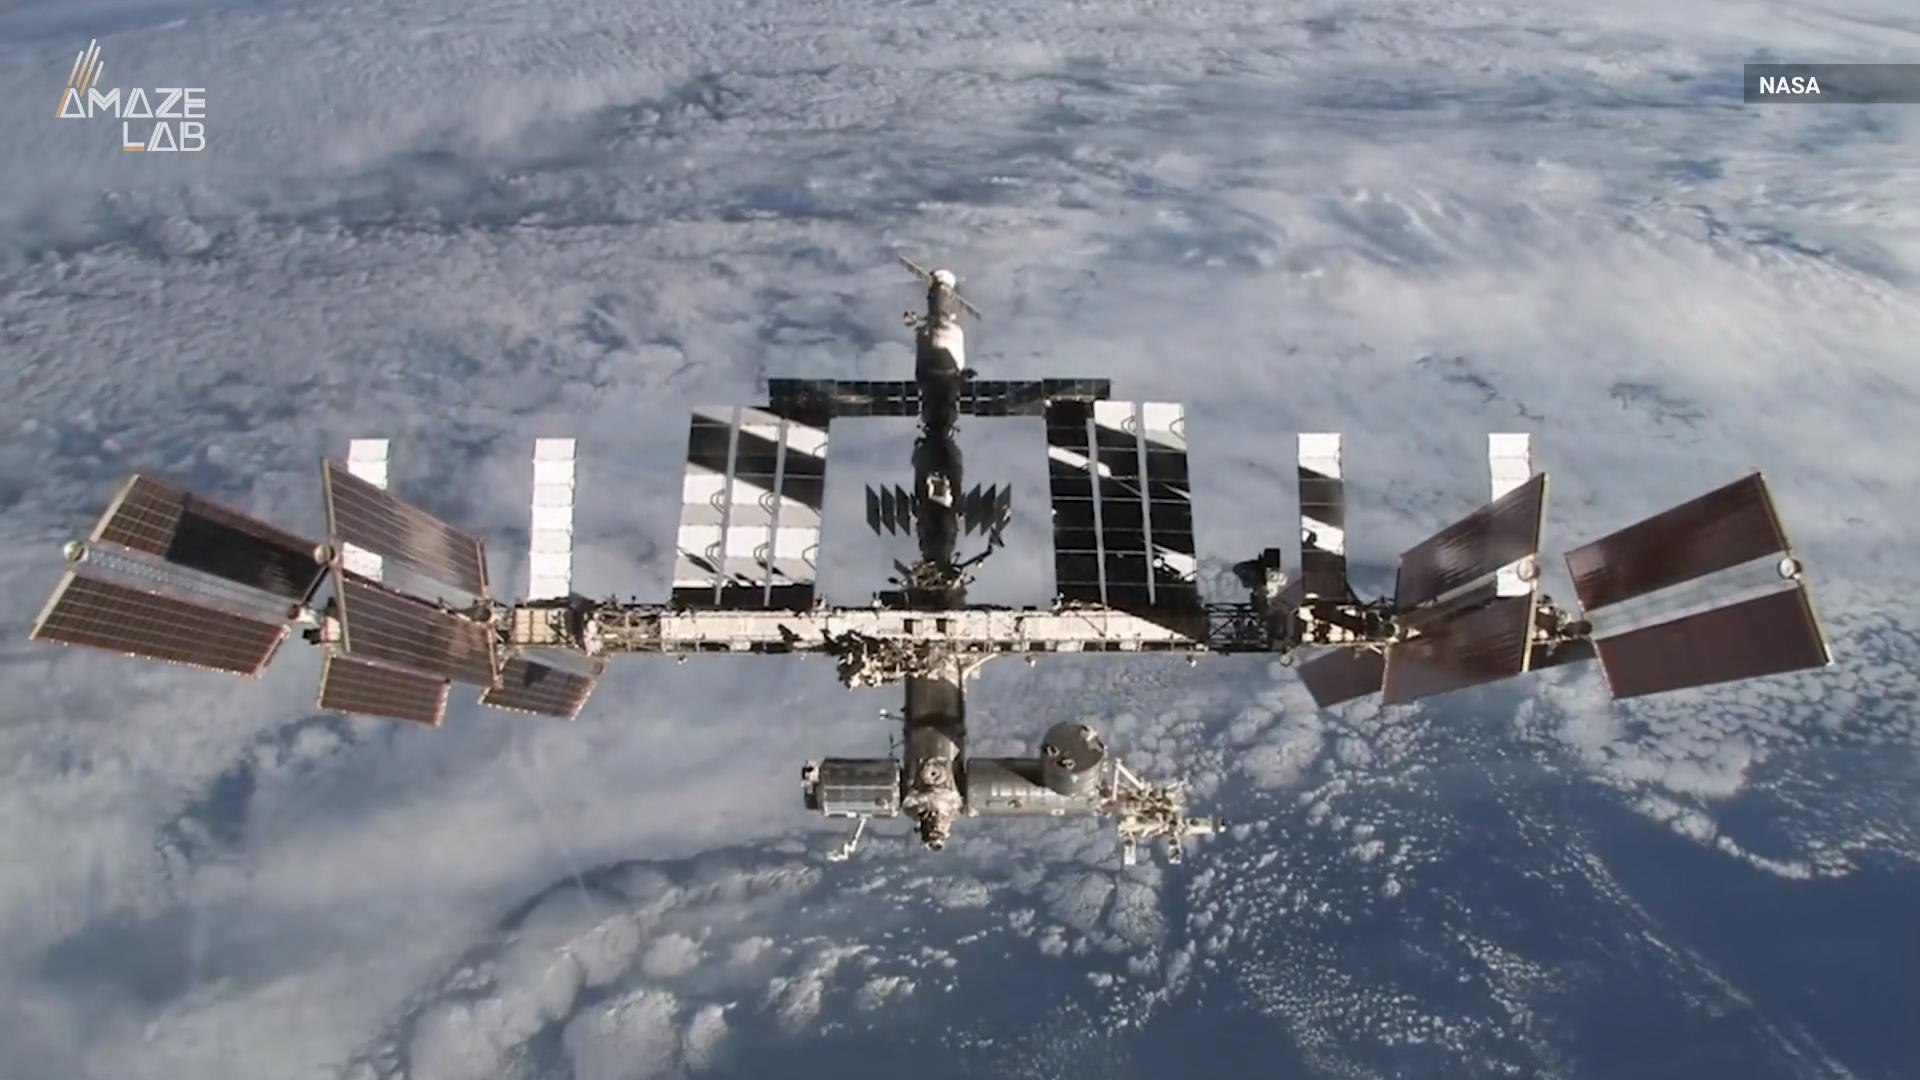 Drug-Resistant Bacteria Found Inside the International Space Station